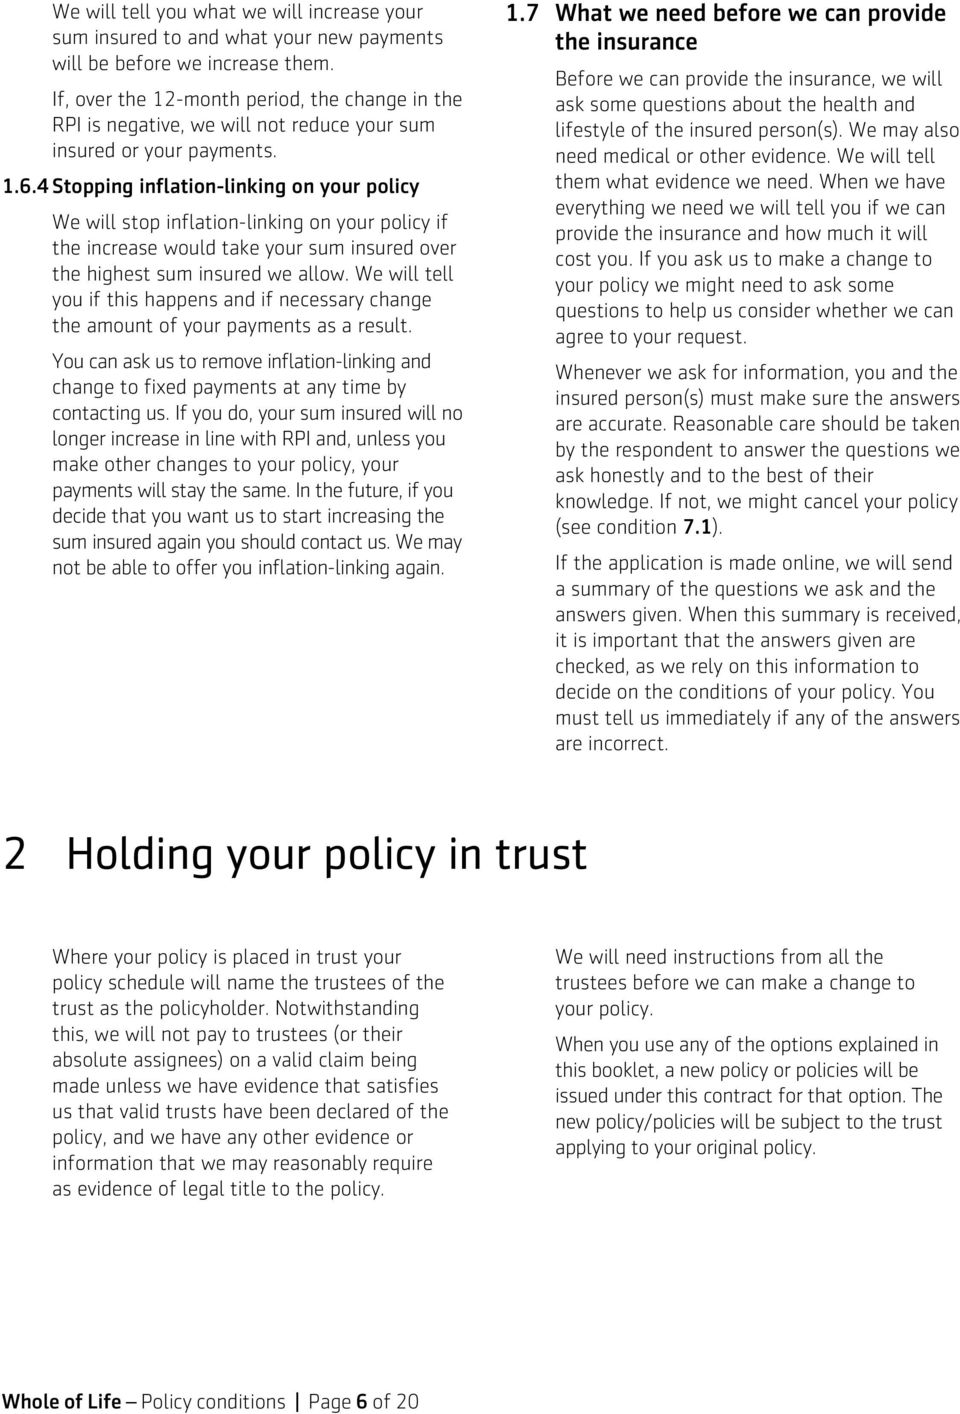 4 Stoppig iflatio-likig o your policy We will stop iflatio-likig o your policy if the icrease would take your sum isured over the highest sum isured we allow.